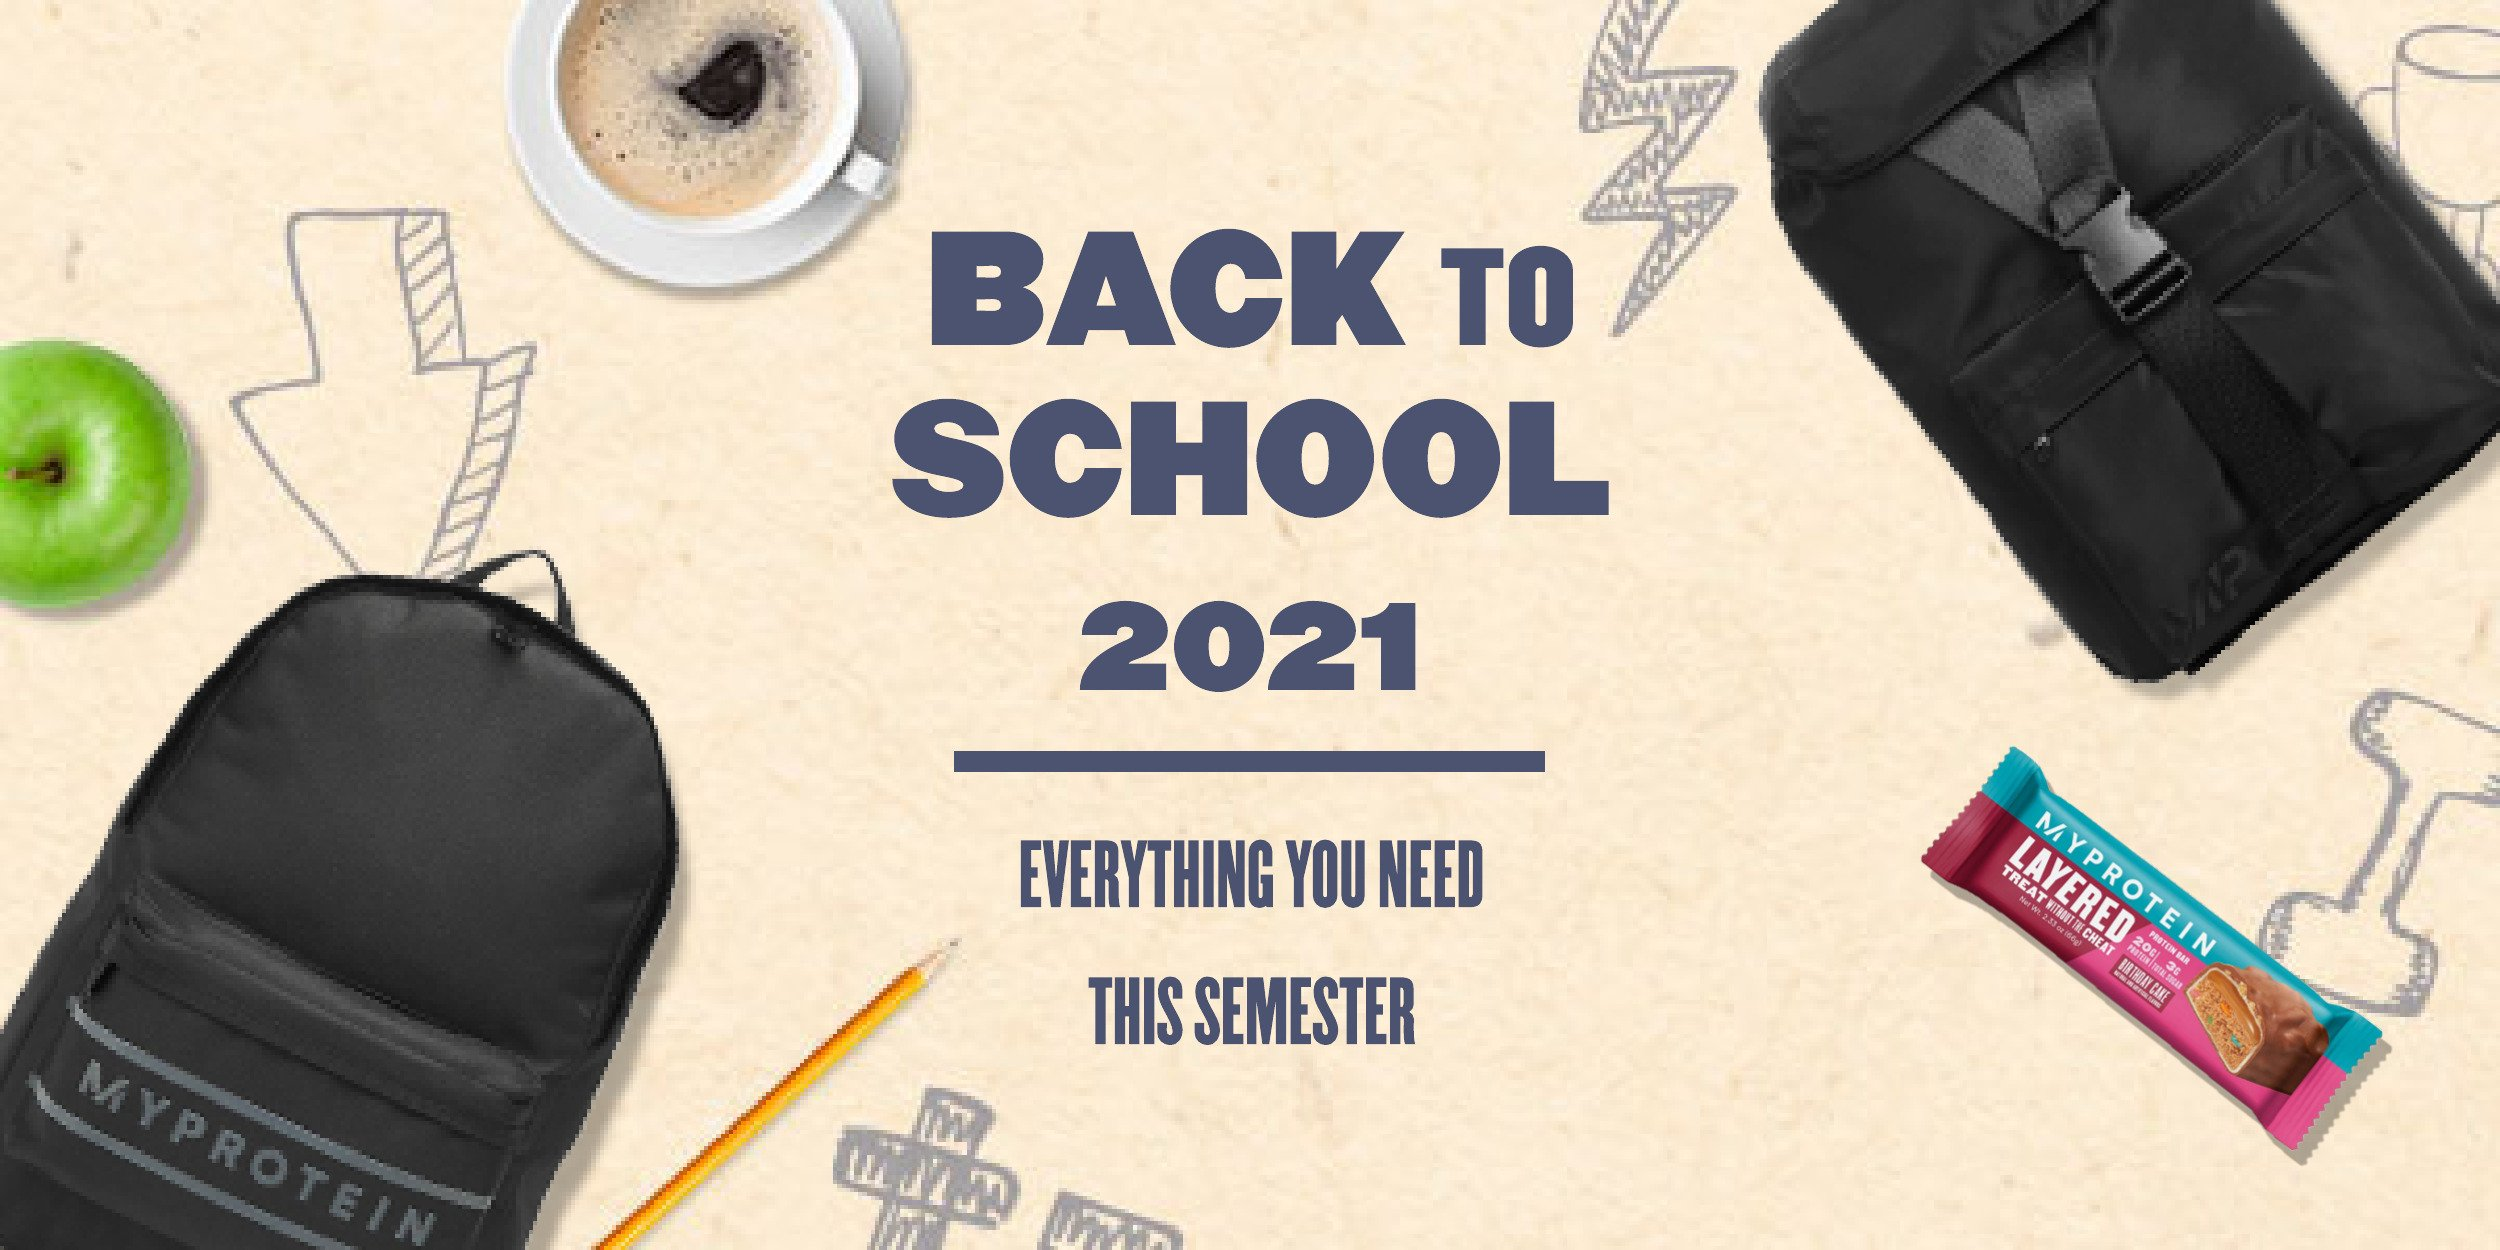 Our Ultimate Back To School Checklist | Shop This Semester's Guide To Nutrition & Apparel